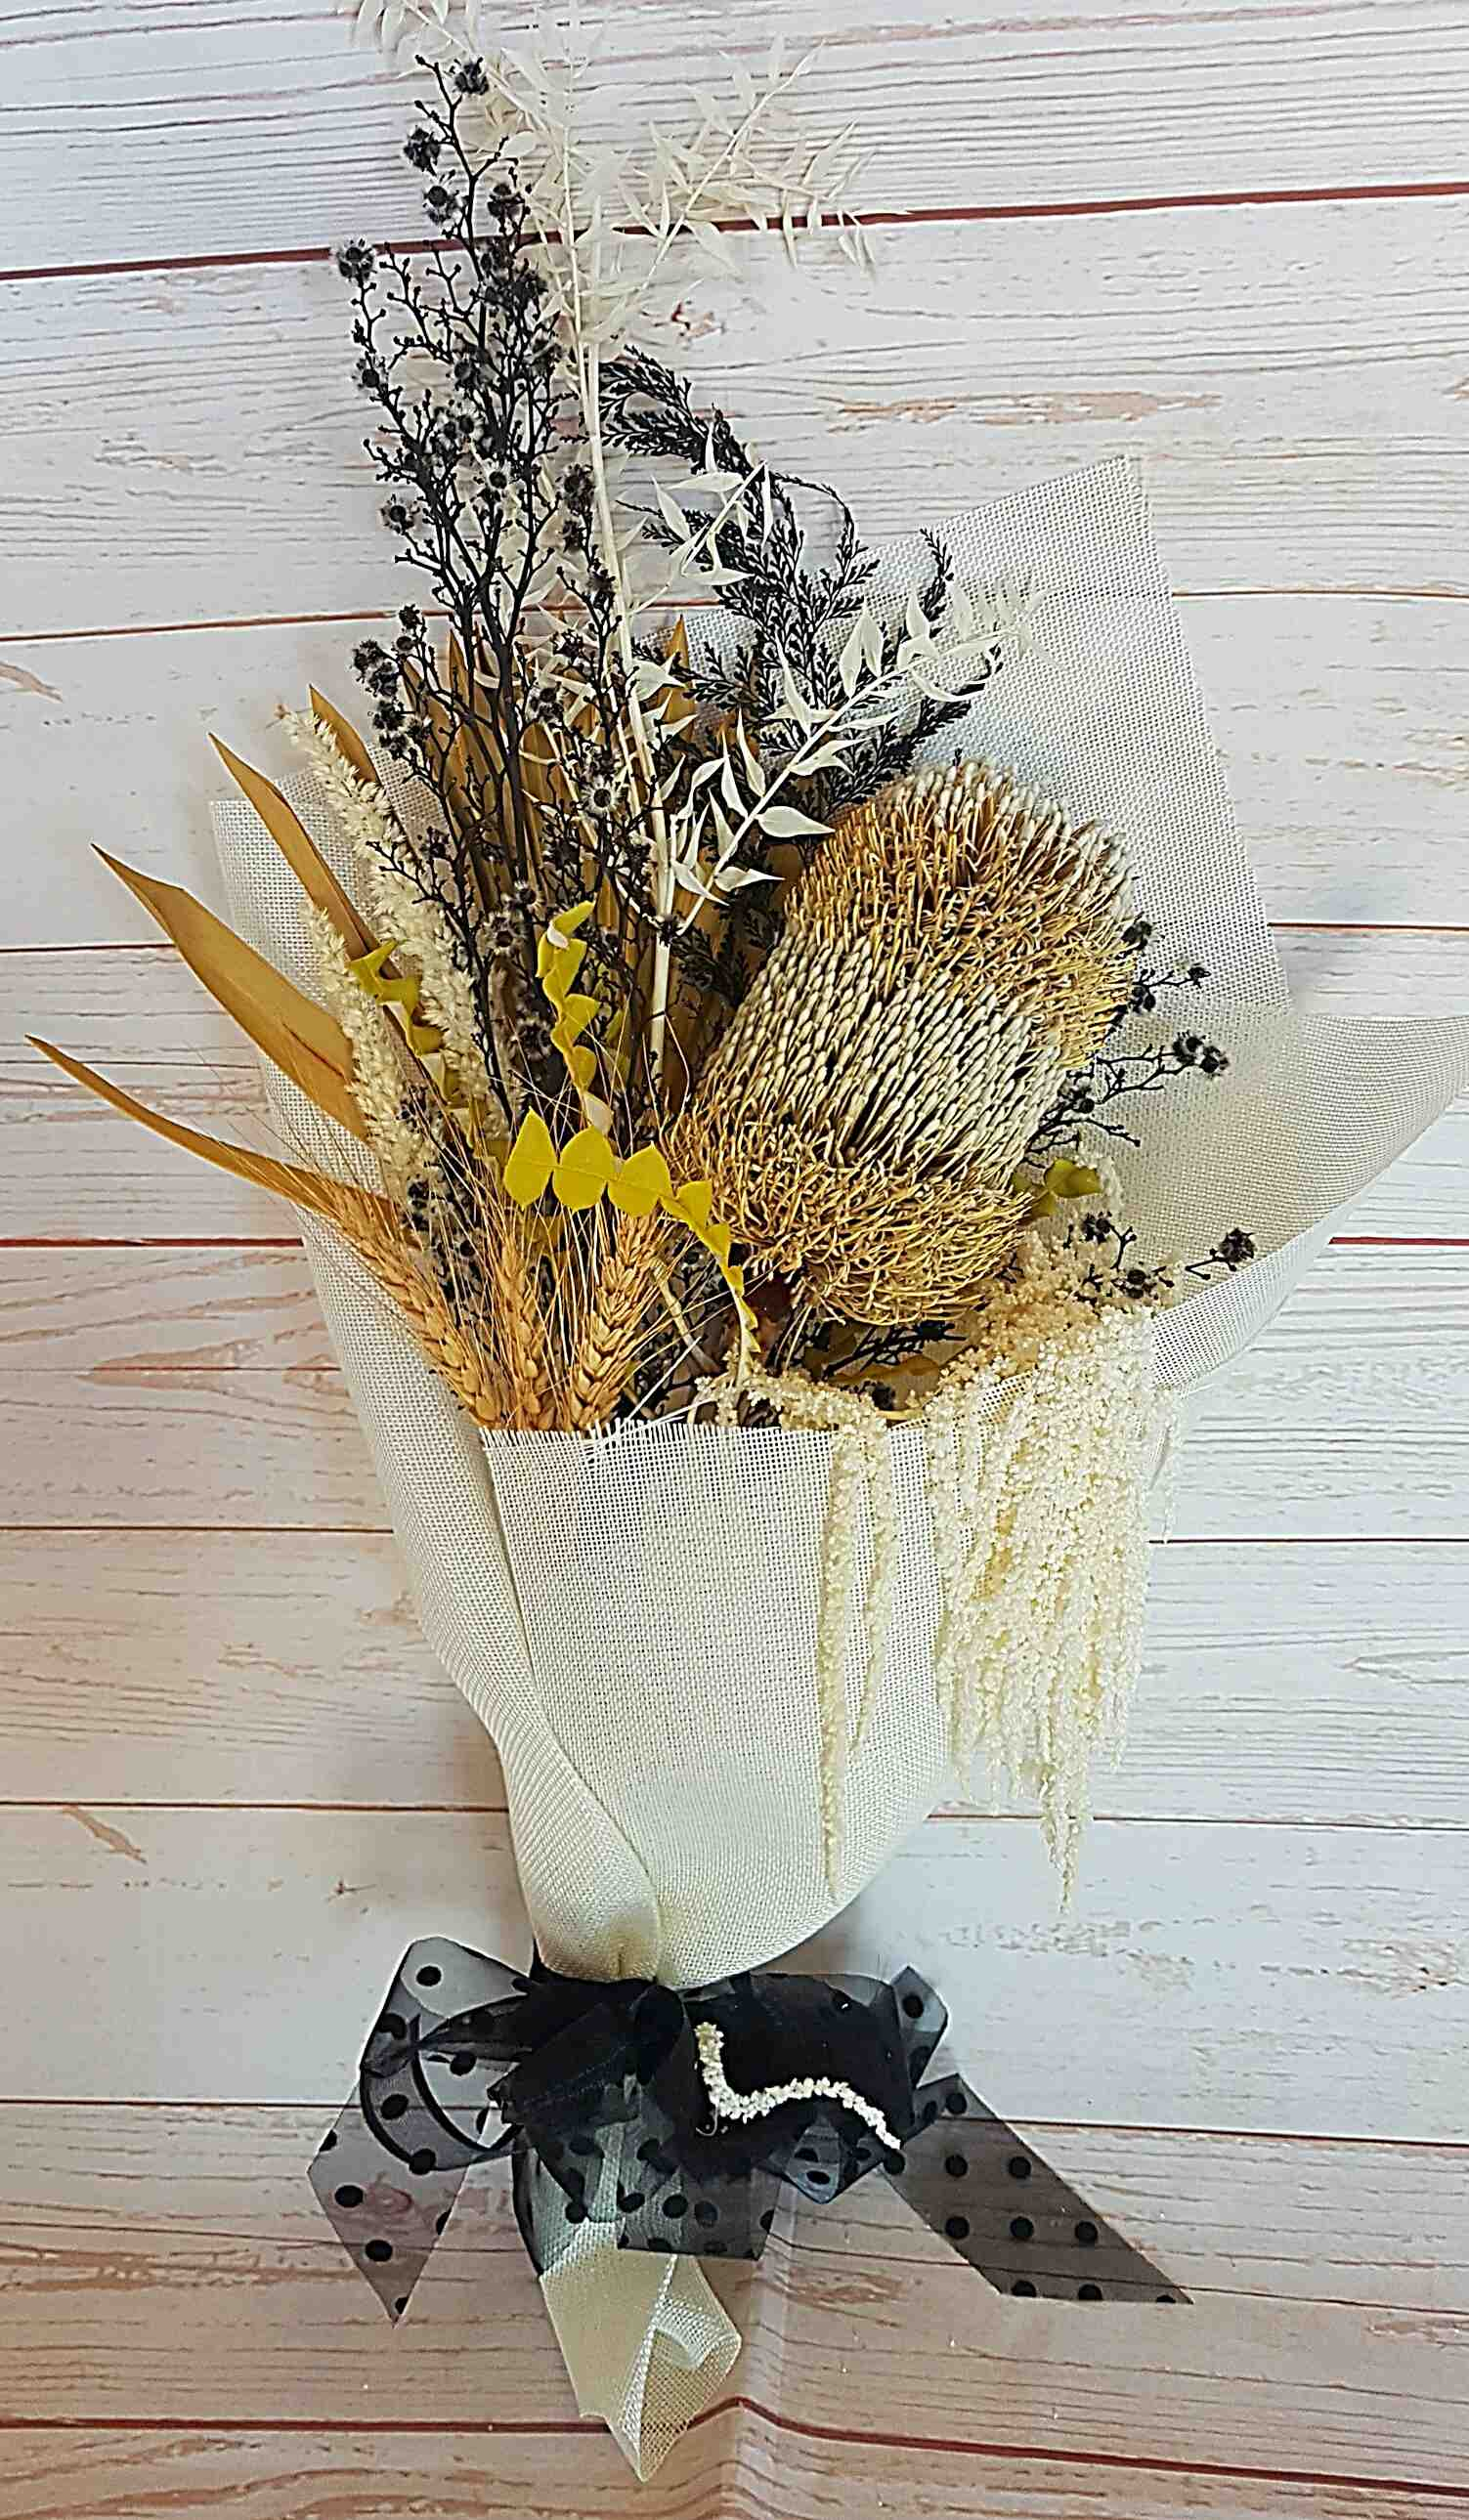 The Audrey bouquet a classic collection of dried and preserved blooms in neutral, white tones with a splash of black.  This bouquet requires no water, and if not placed in the sun will hold its beauty.